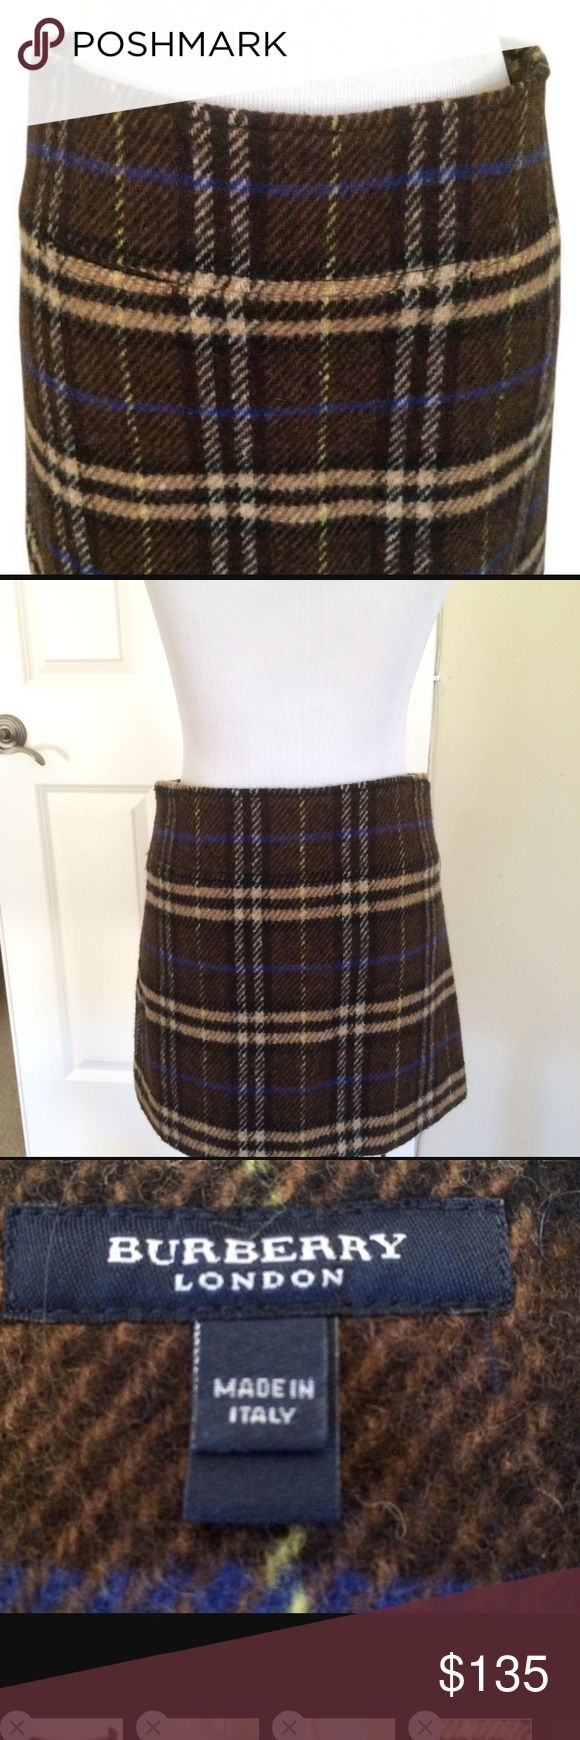 ✨Burberry Plaid Wool Brown Miniskirt, Sz 4✨ Authentic Burberry London Plaid Miniskirt  Size: 4 (US)  Excellent condition!  Worn only twice, so no tags attached  Fabric Content: 100% Lambswool; Lining: 100% Cupro  Fabric Care: Dry clean  Colors Include: Brown, cream, dark brown, and a bit of blue  Item Specifics & Details: Zipper closure at side. Fully lined. Pulls on. Front pockets, which are not obvious and were never used  Super cute and very comfy Burberry Skirts Mini